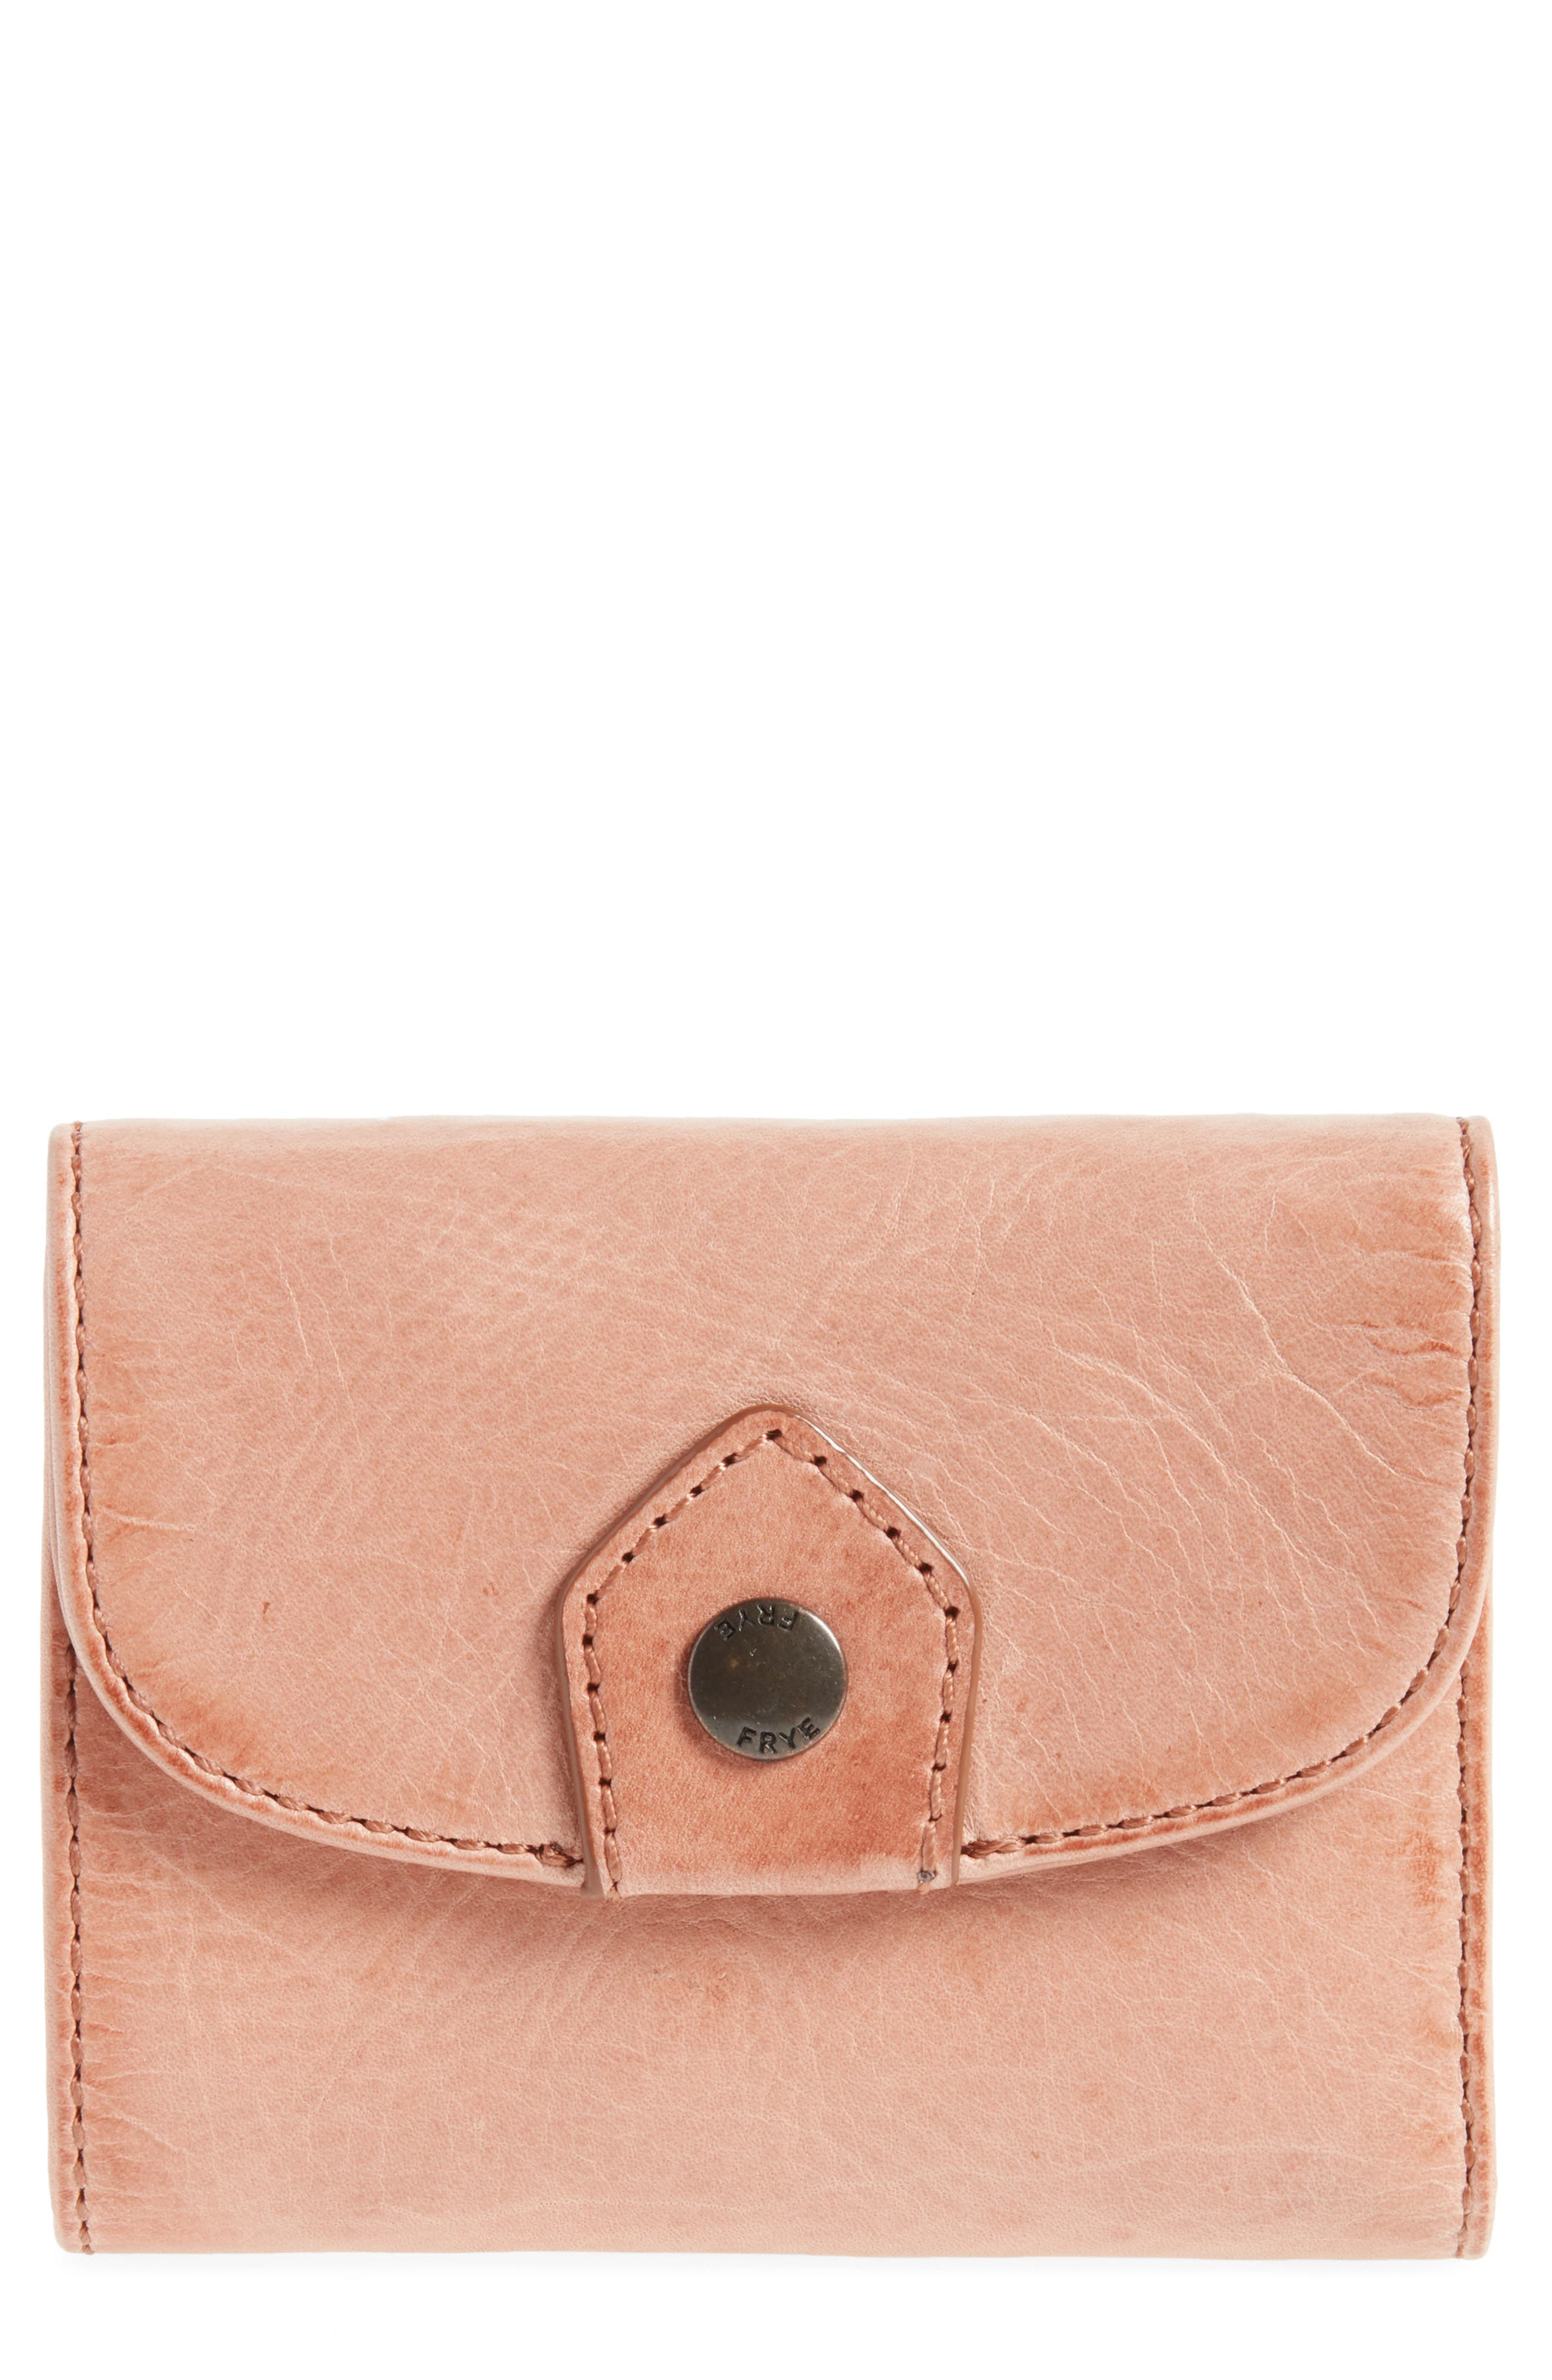 Melissa Medium Trifold Leather Wallet,                         Main,                         color, Dusty Rose